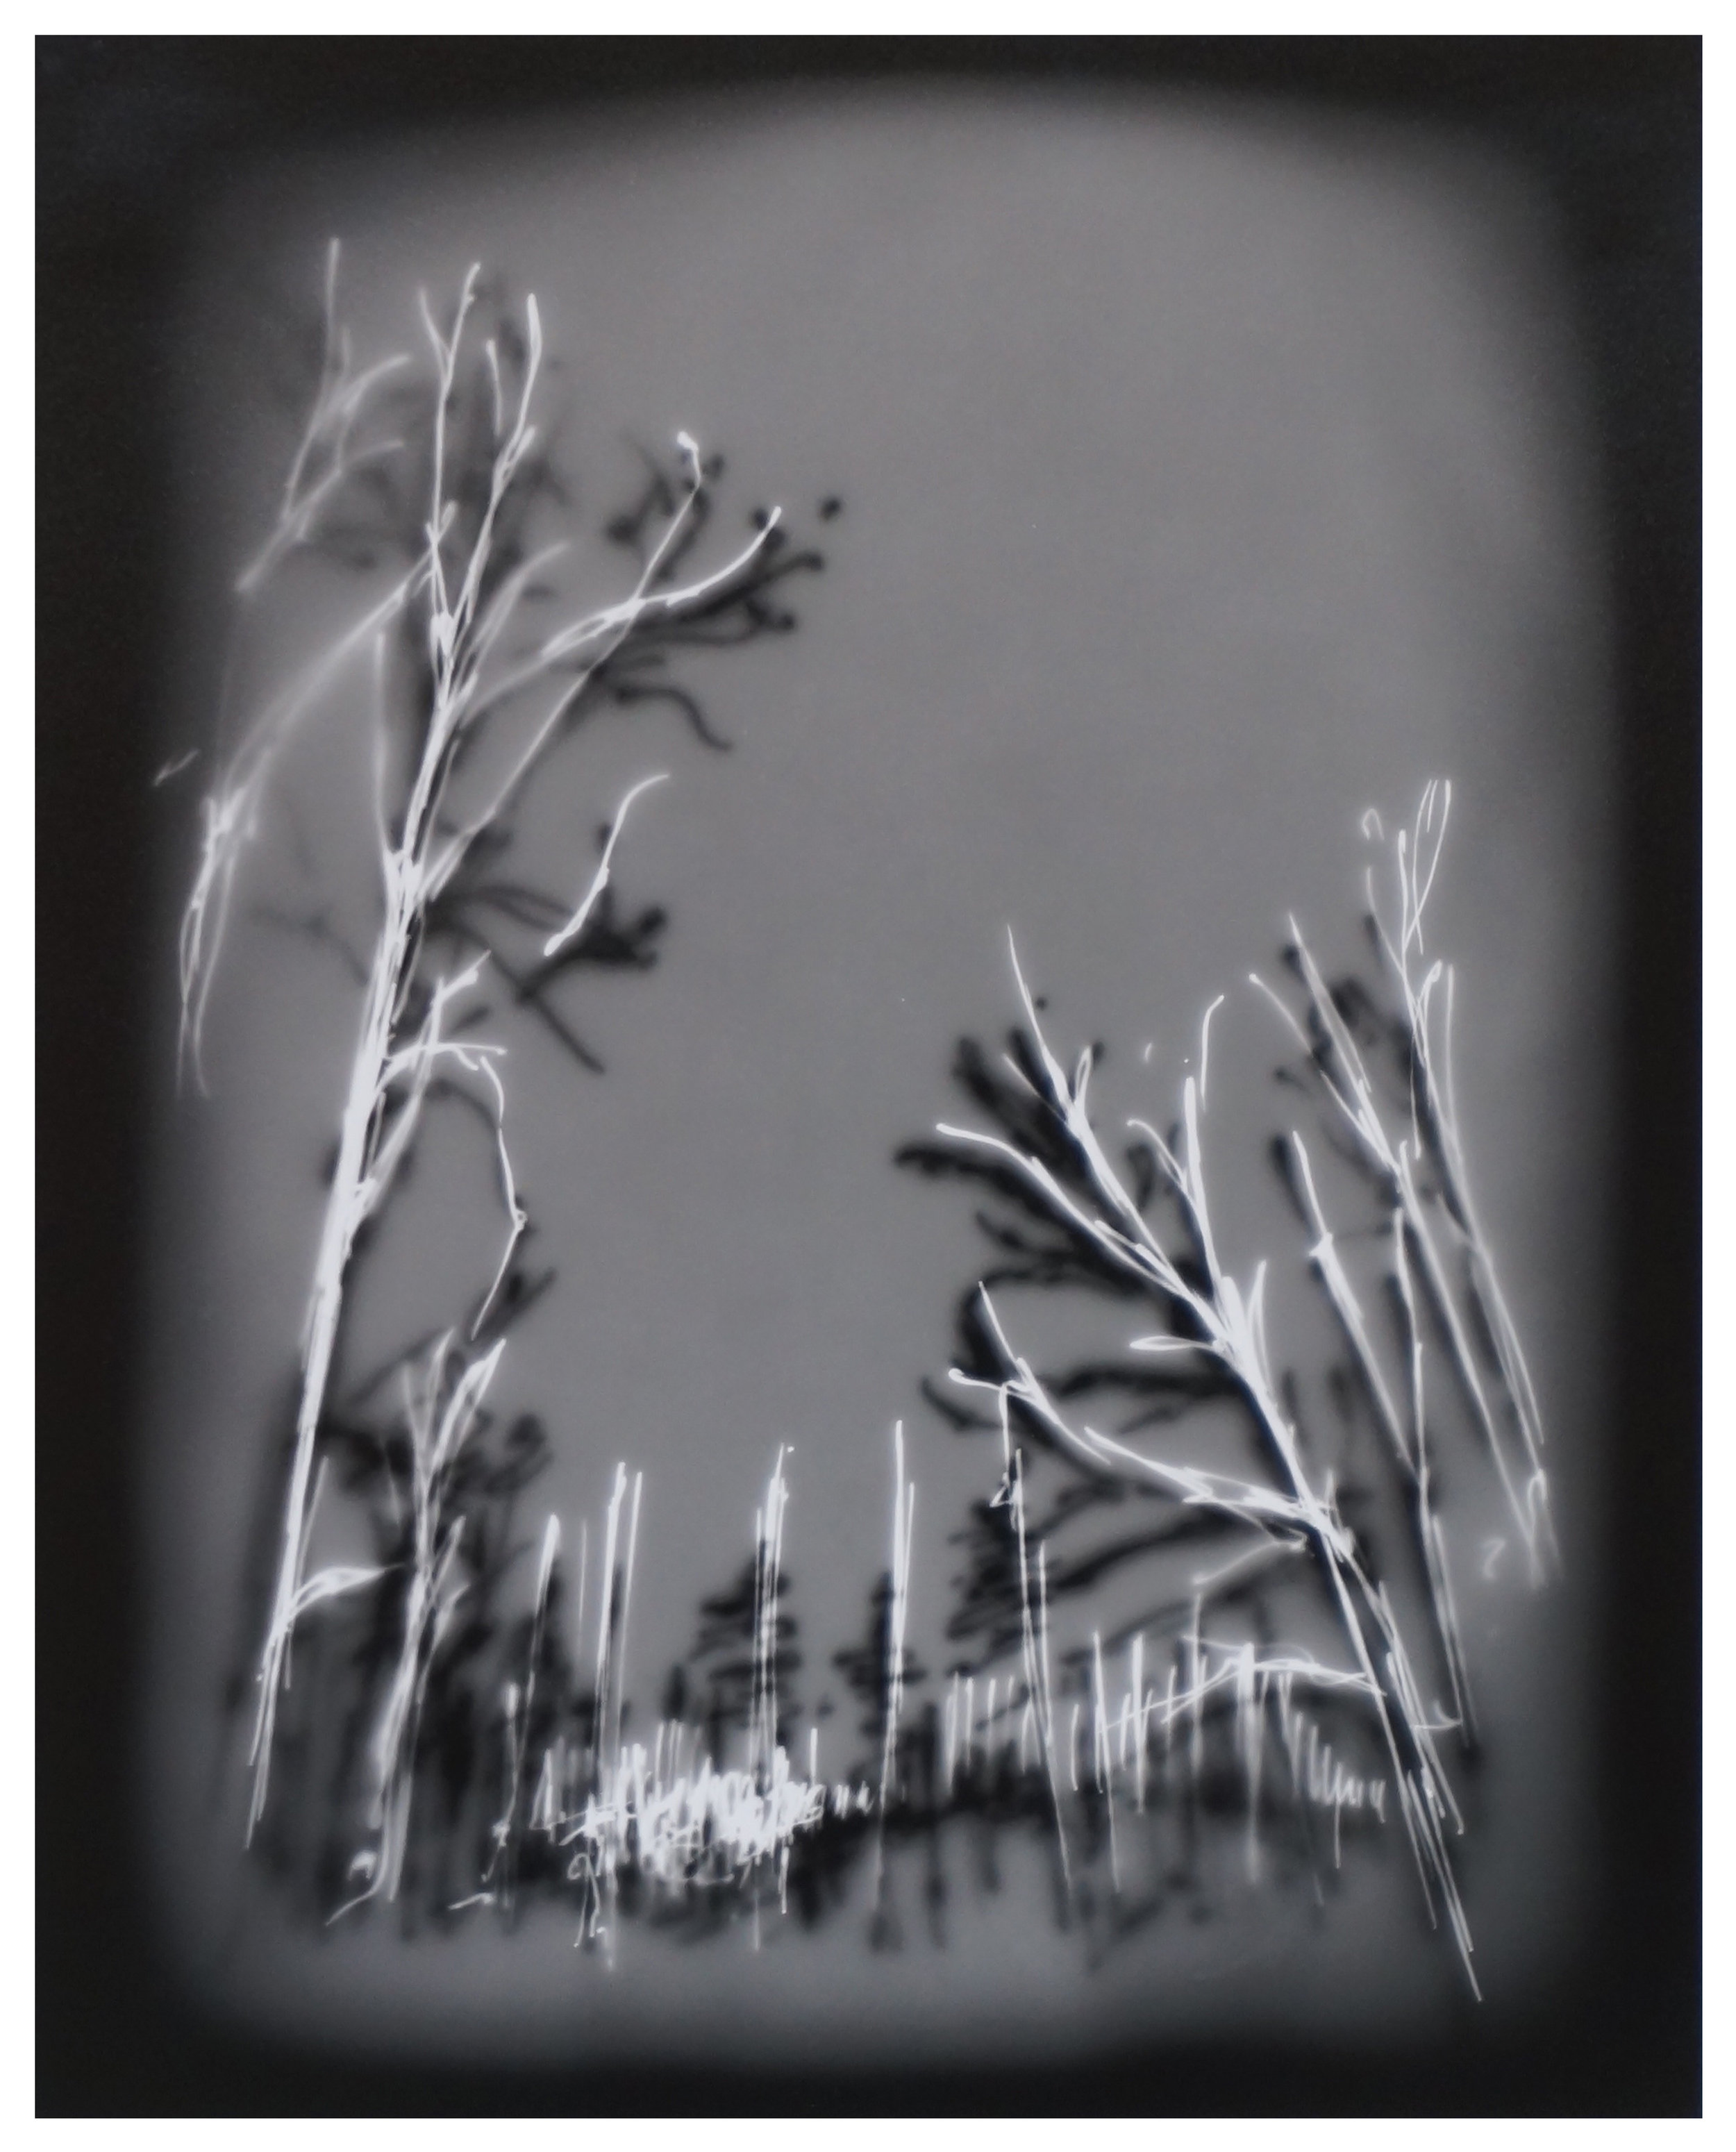 Helen Dennis   Trees, Oregon #2   2013  Photographic drawing  Signed by the artist,  verso   Image/sheet: 10 x 8 inches  Framed: 14 x 11 inches